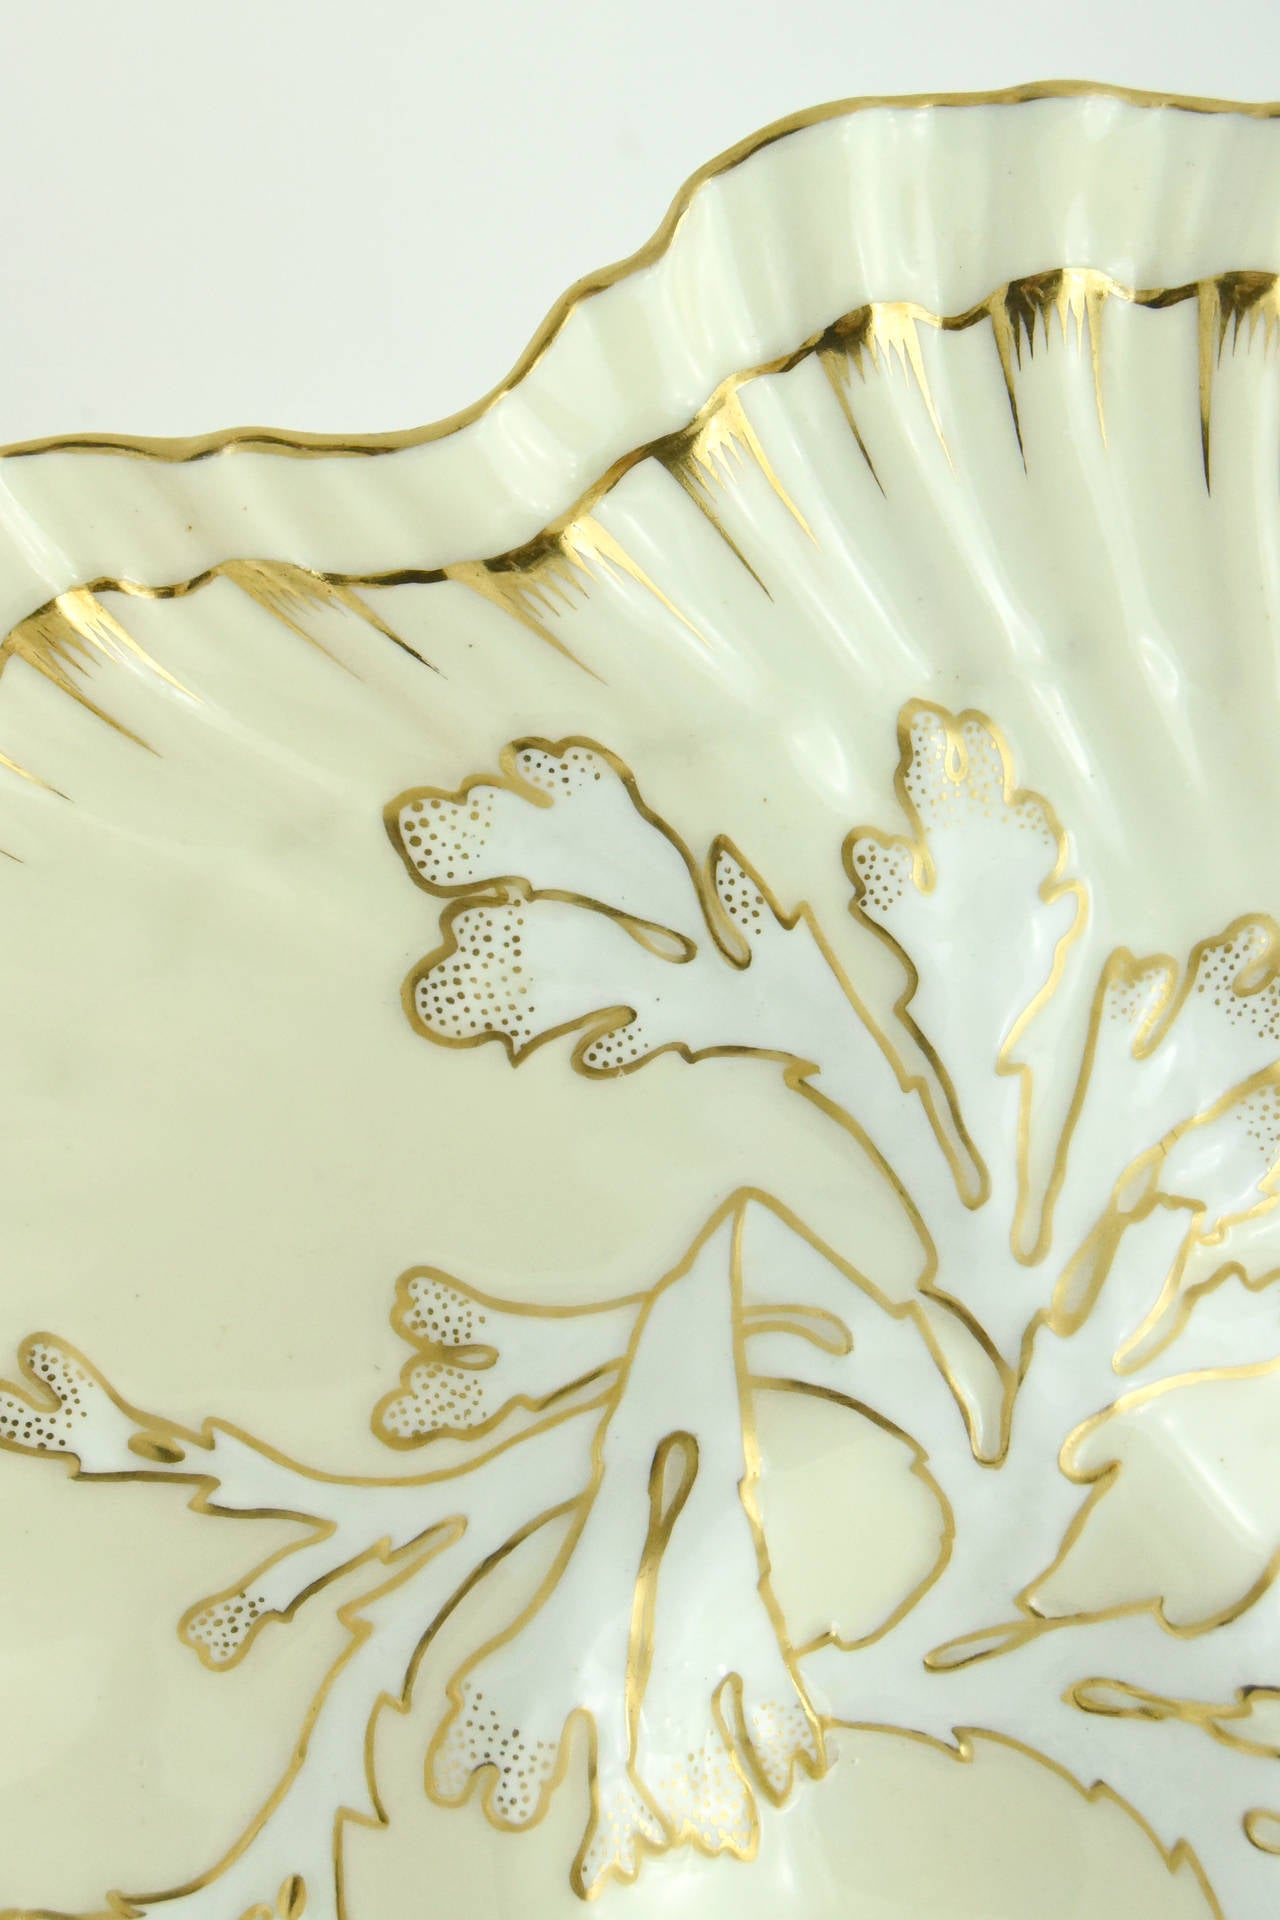 Porcelain Set of 12 19th c. Brownfield's for Tiffany Ivory & Gold Coral Reef Oyster Plates For Sale